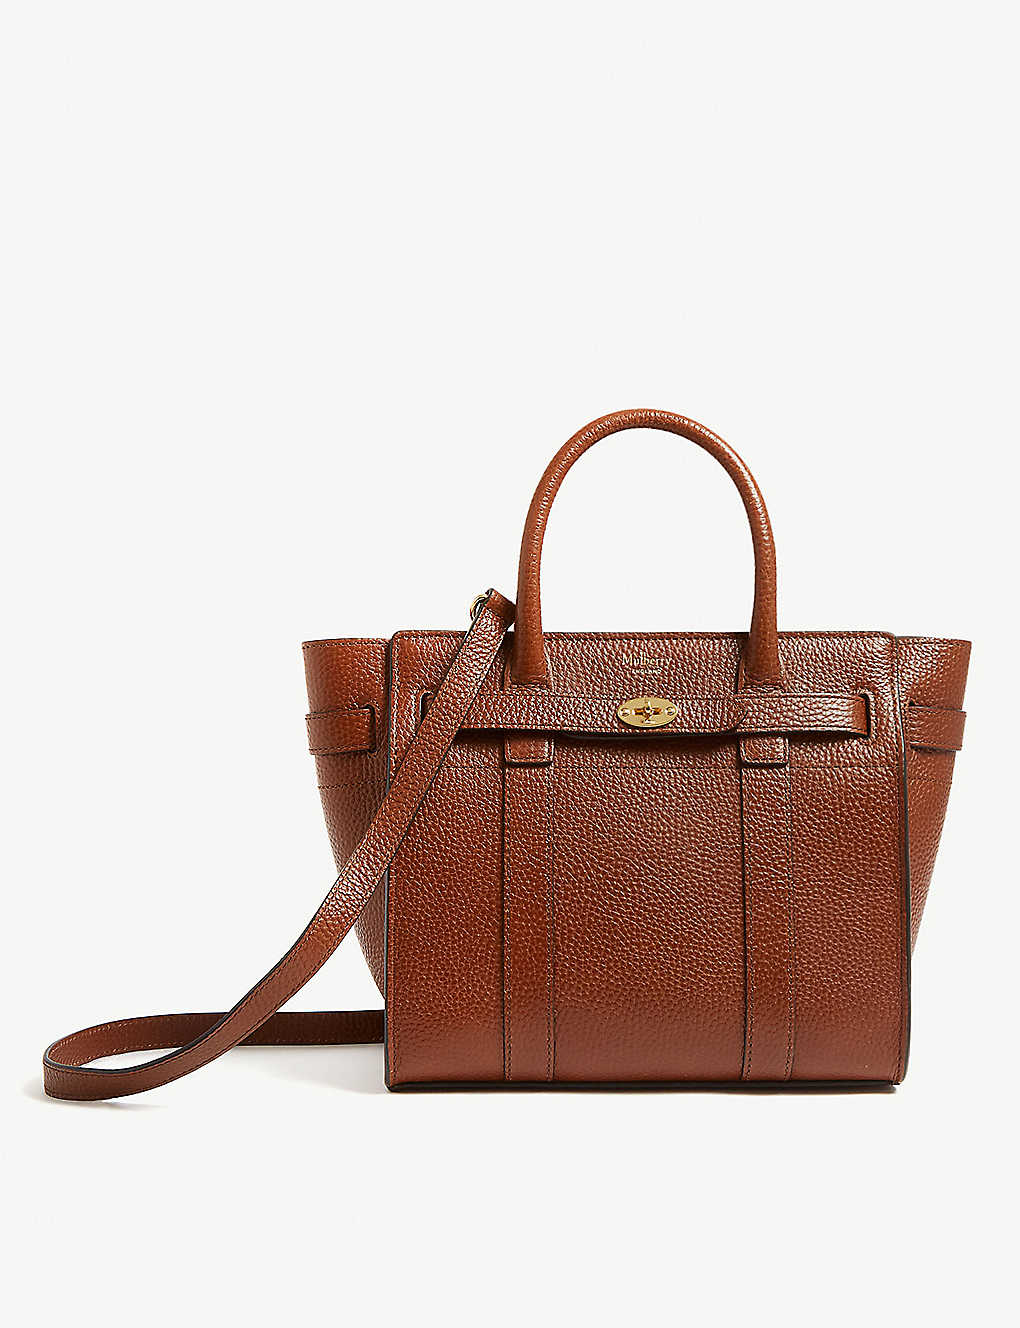 c50b29fad146 MULBERRY - Small Bayswater leather tote bag